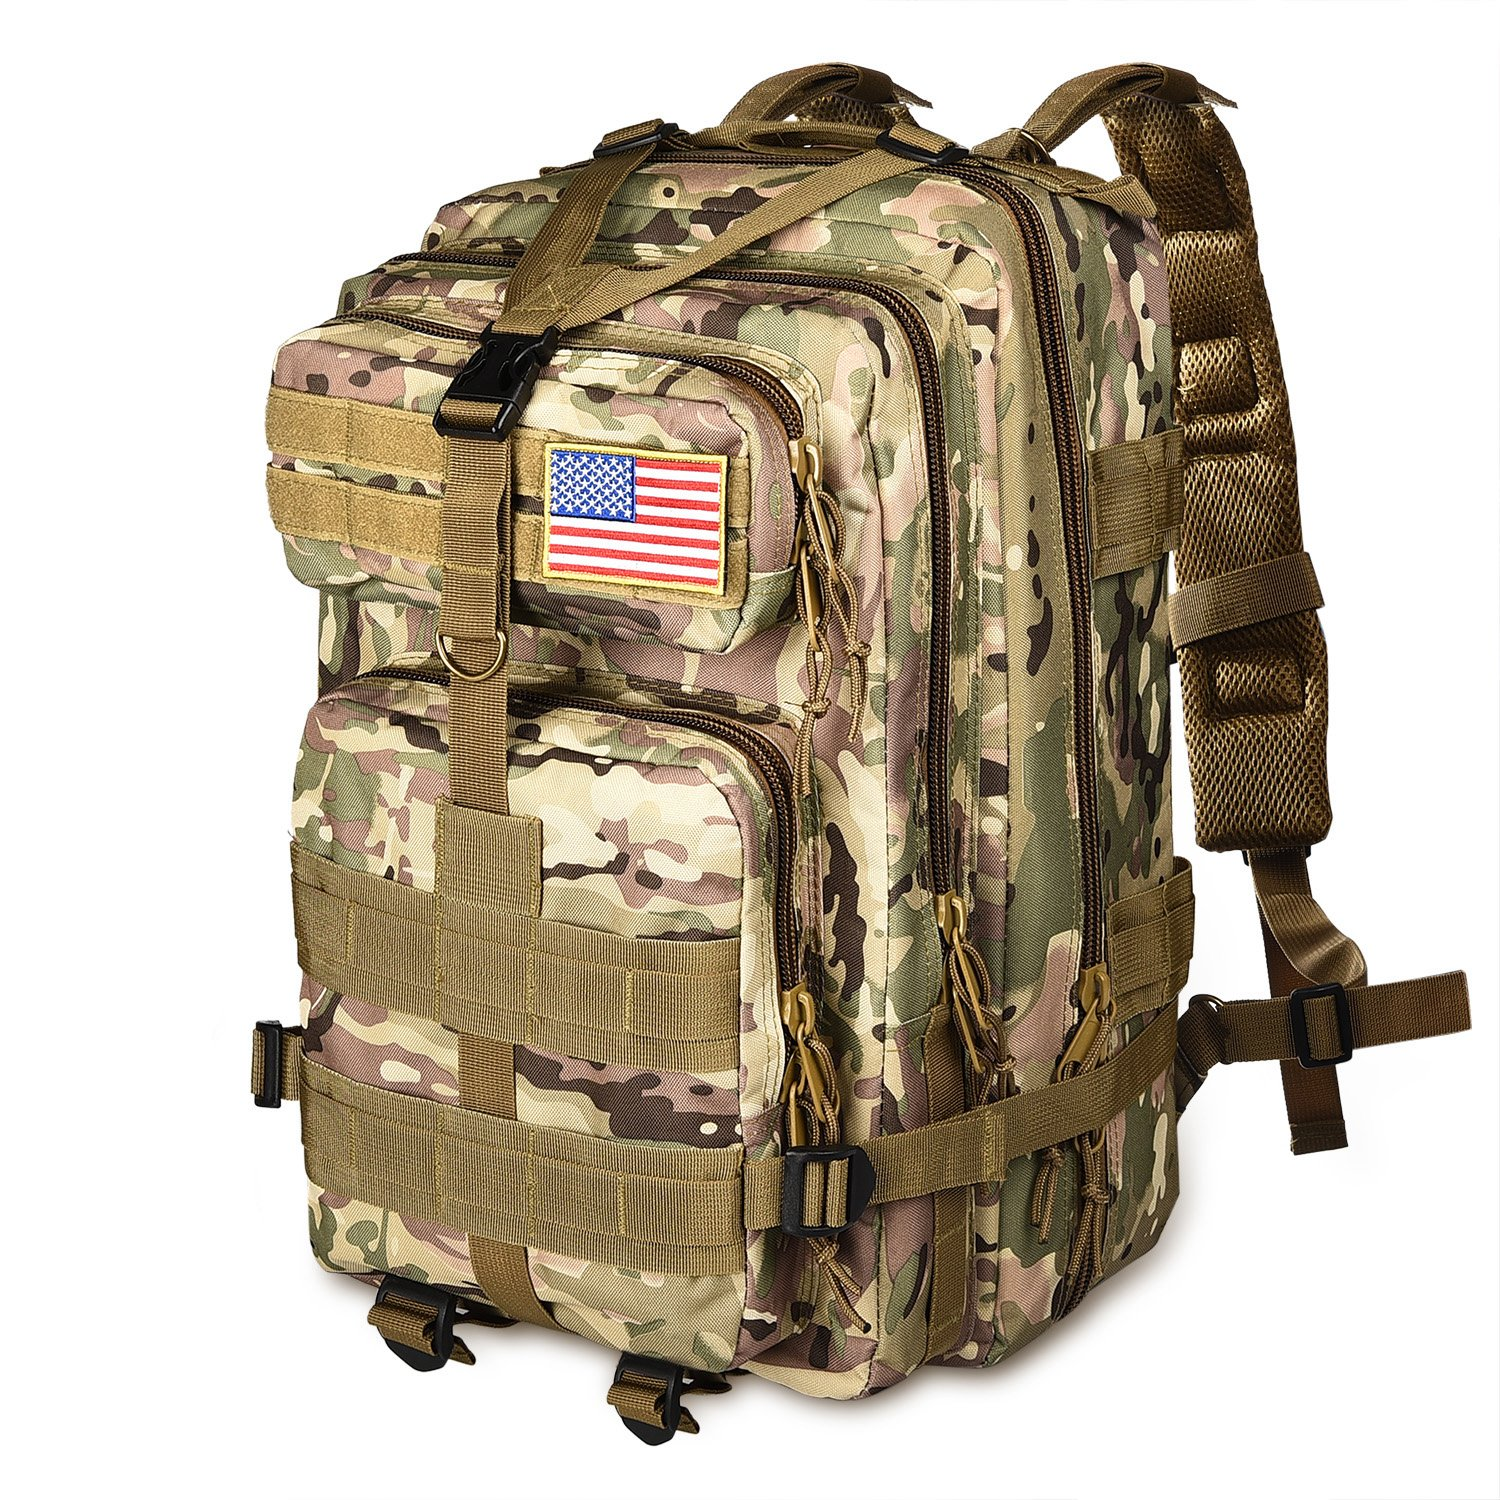 NOOLA 40L Military Tactical Army Backpack 3 Day Pack Molle Bag Backpack Rucksacks for Outdoor Hiking Camping Trekking Hunting with Flag Patch CP